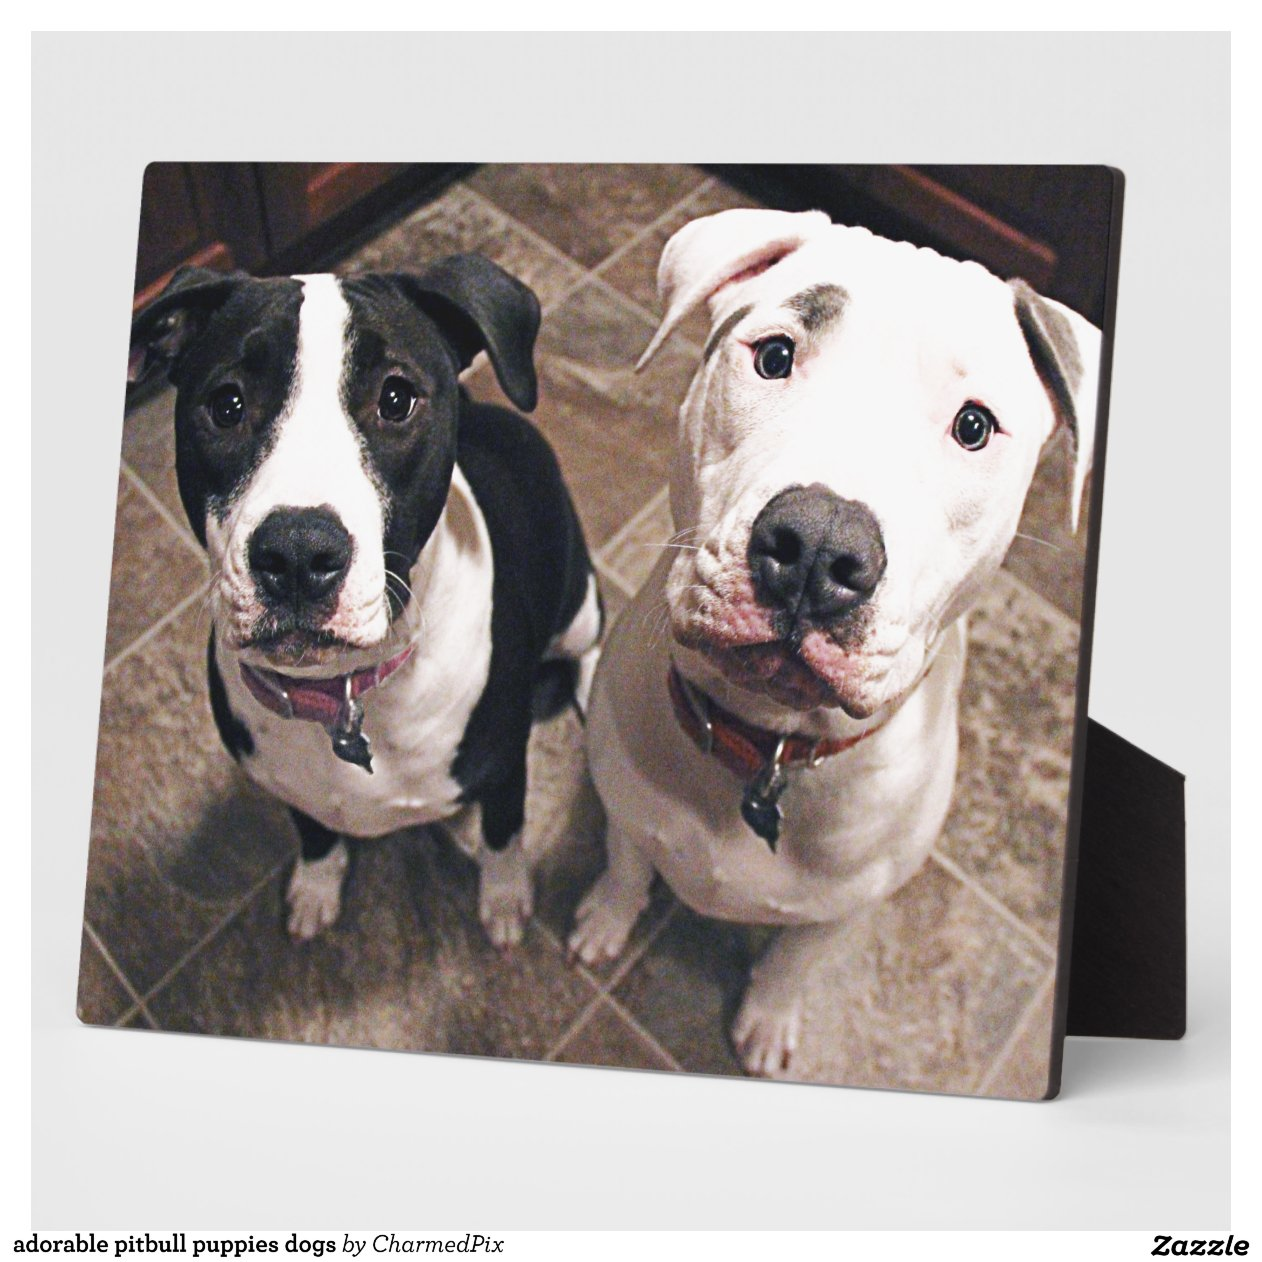 Adorable Pitbull Puppies Dogs